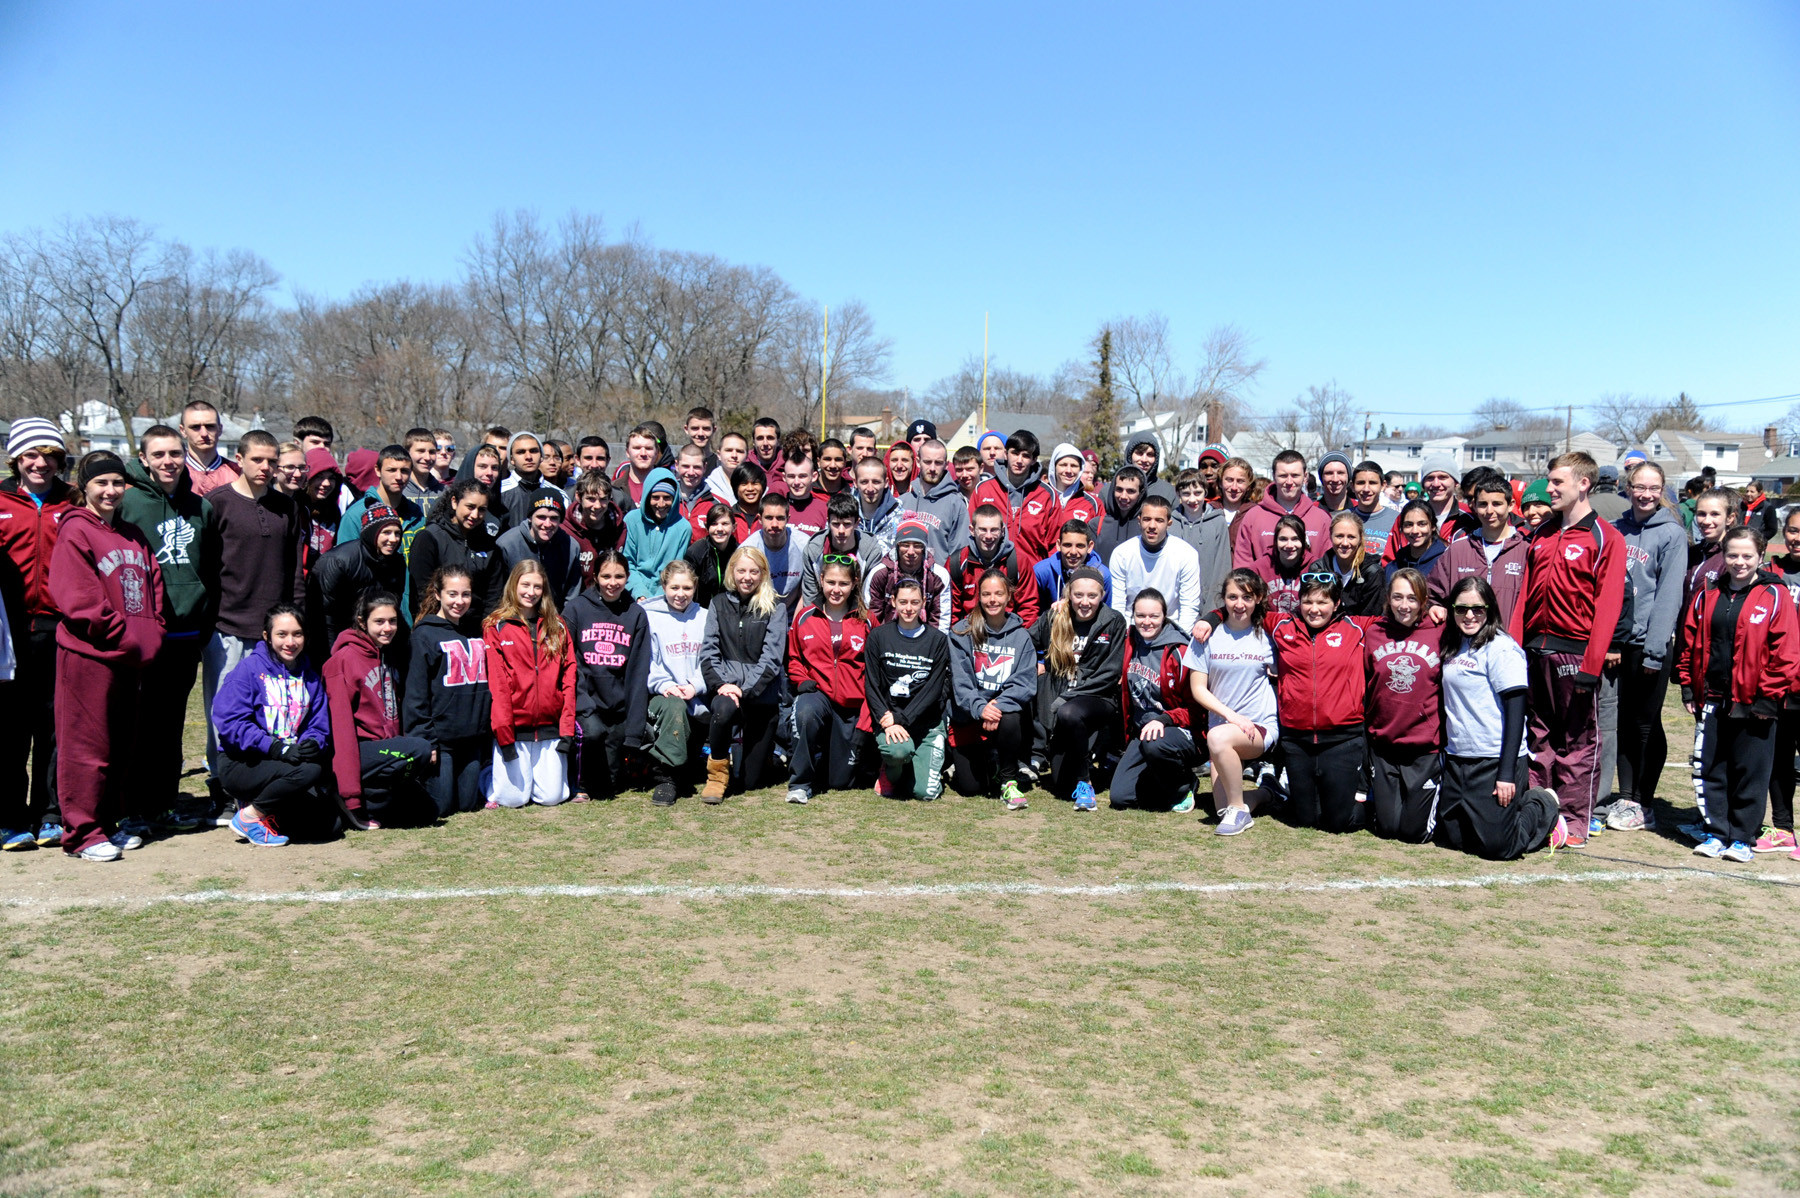 The Wellington C. Mepham High School track team organized and ran the Paul Limmer Invitational at their school.